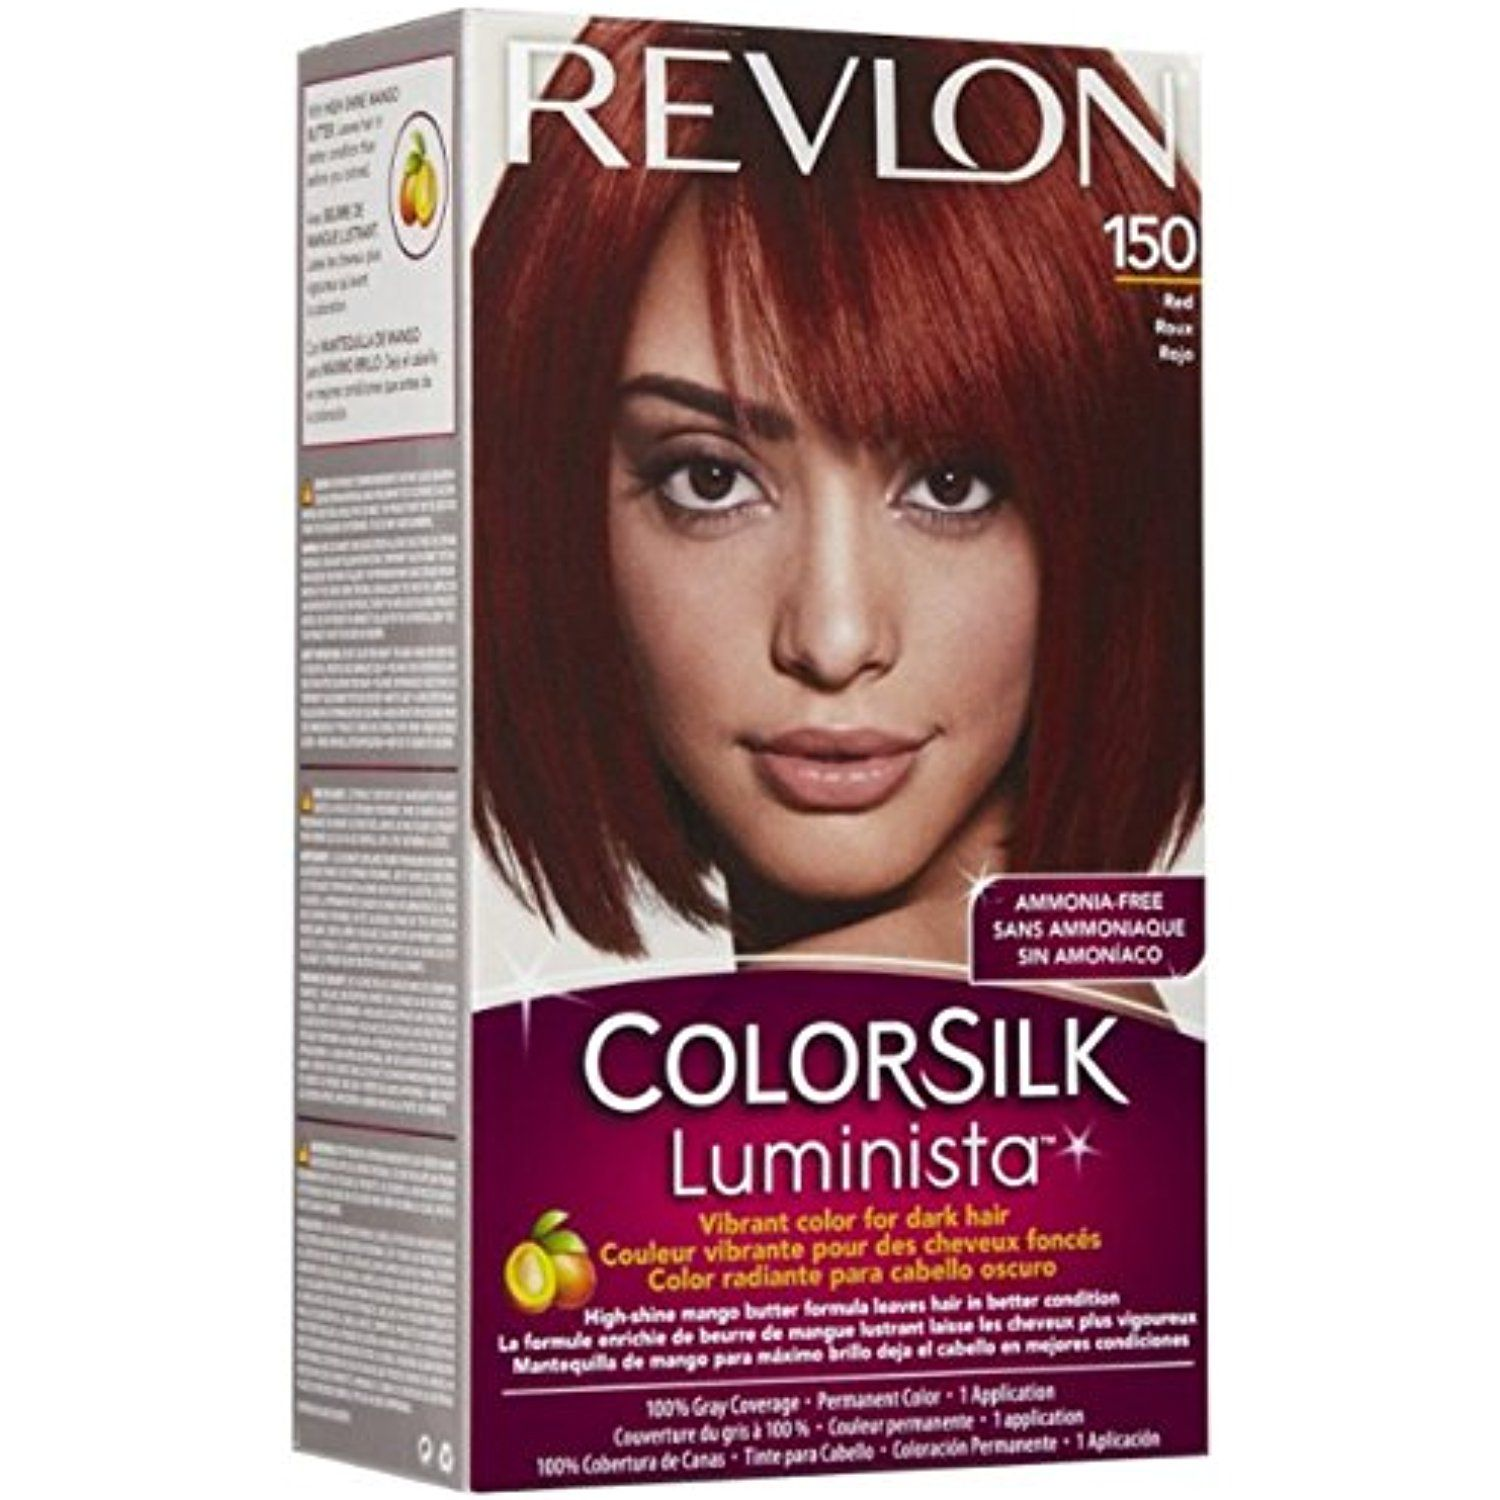 Revlon Colorsilk Luminista Hair Color 150 Red 1 Ea Pack Of 2 See This Great Product This Is An Affiliate Link And I Receive A C Revlon Color Revlon Colorsilk Dark Hair